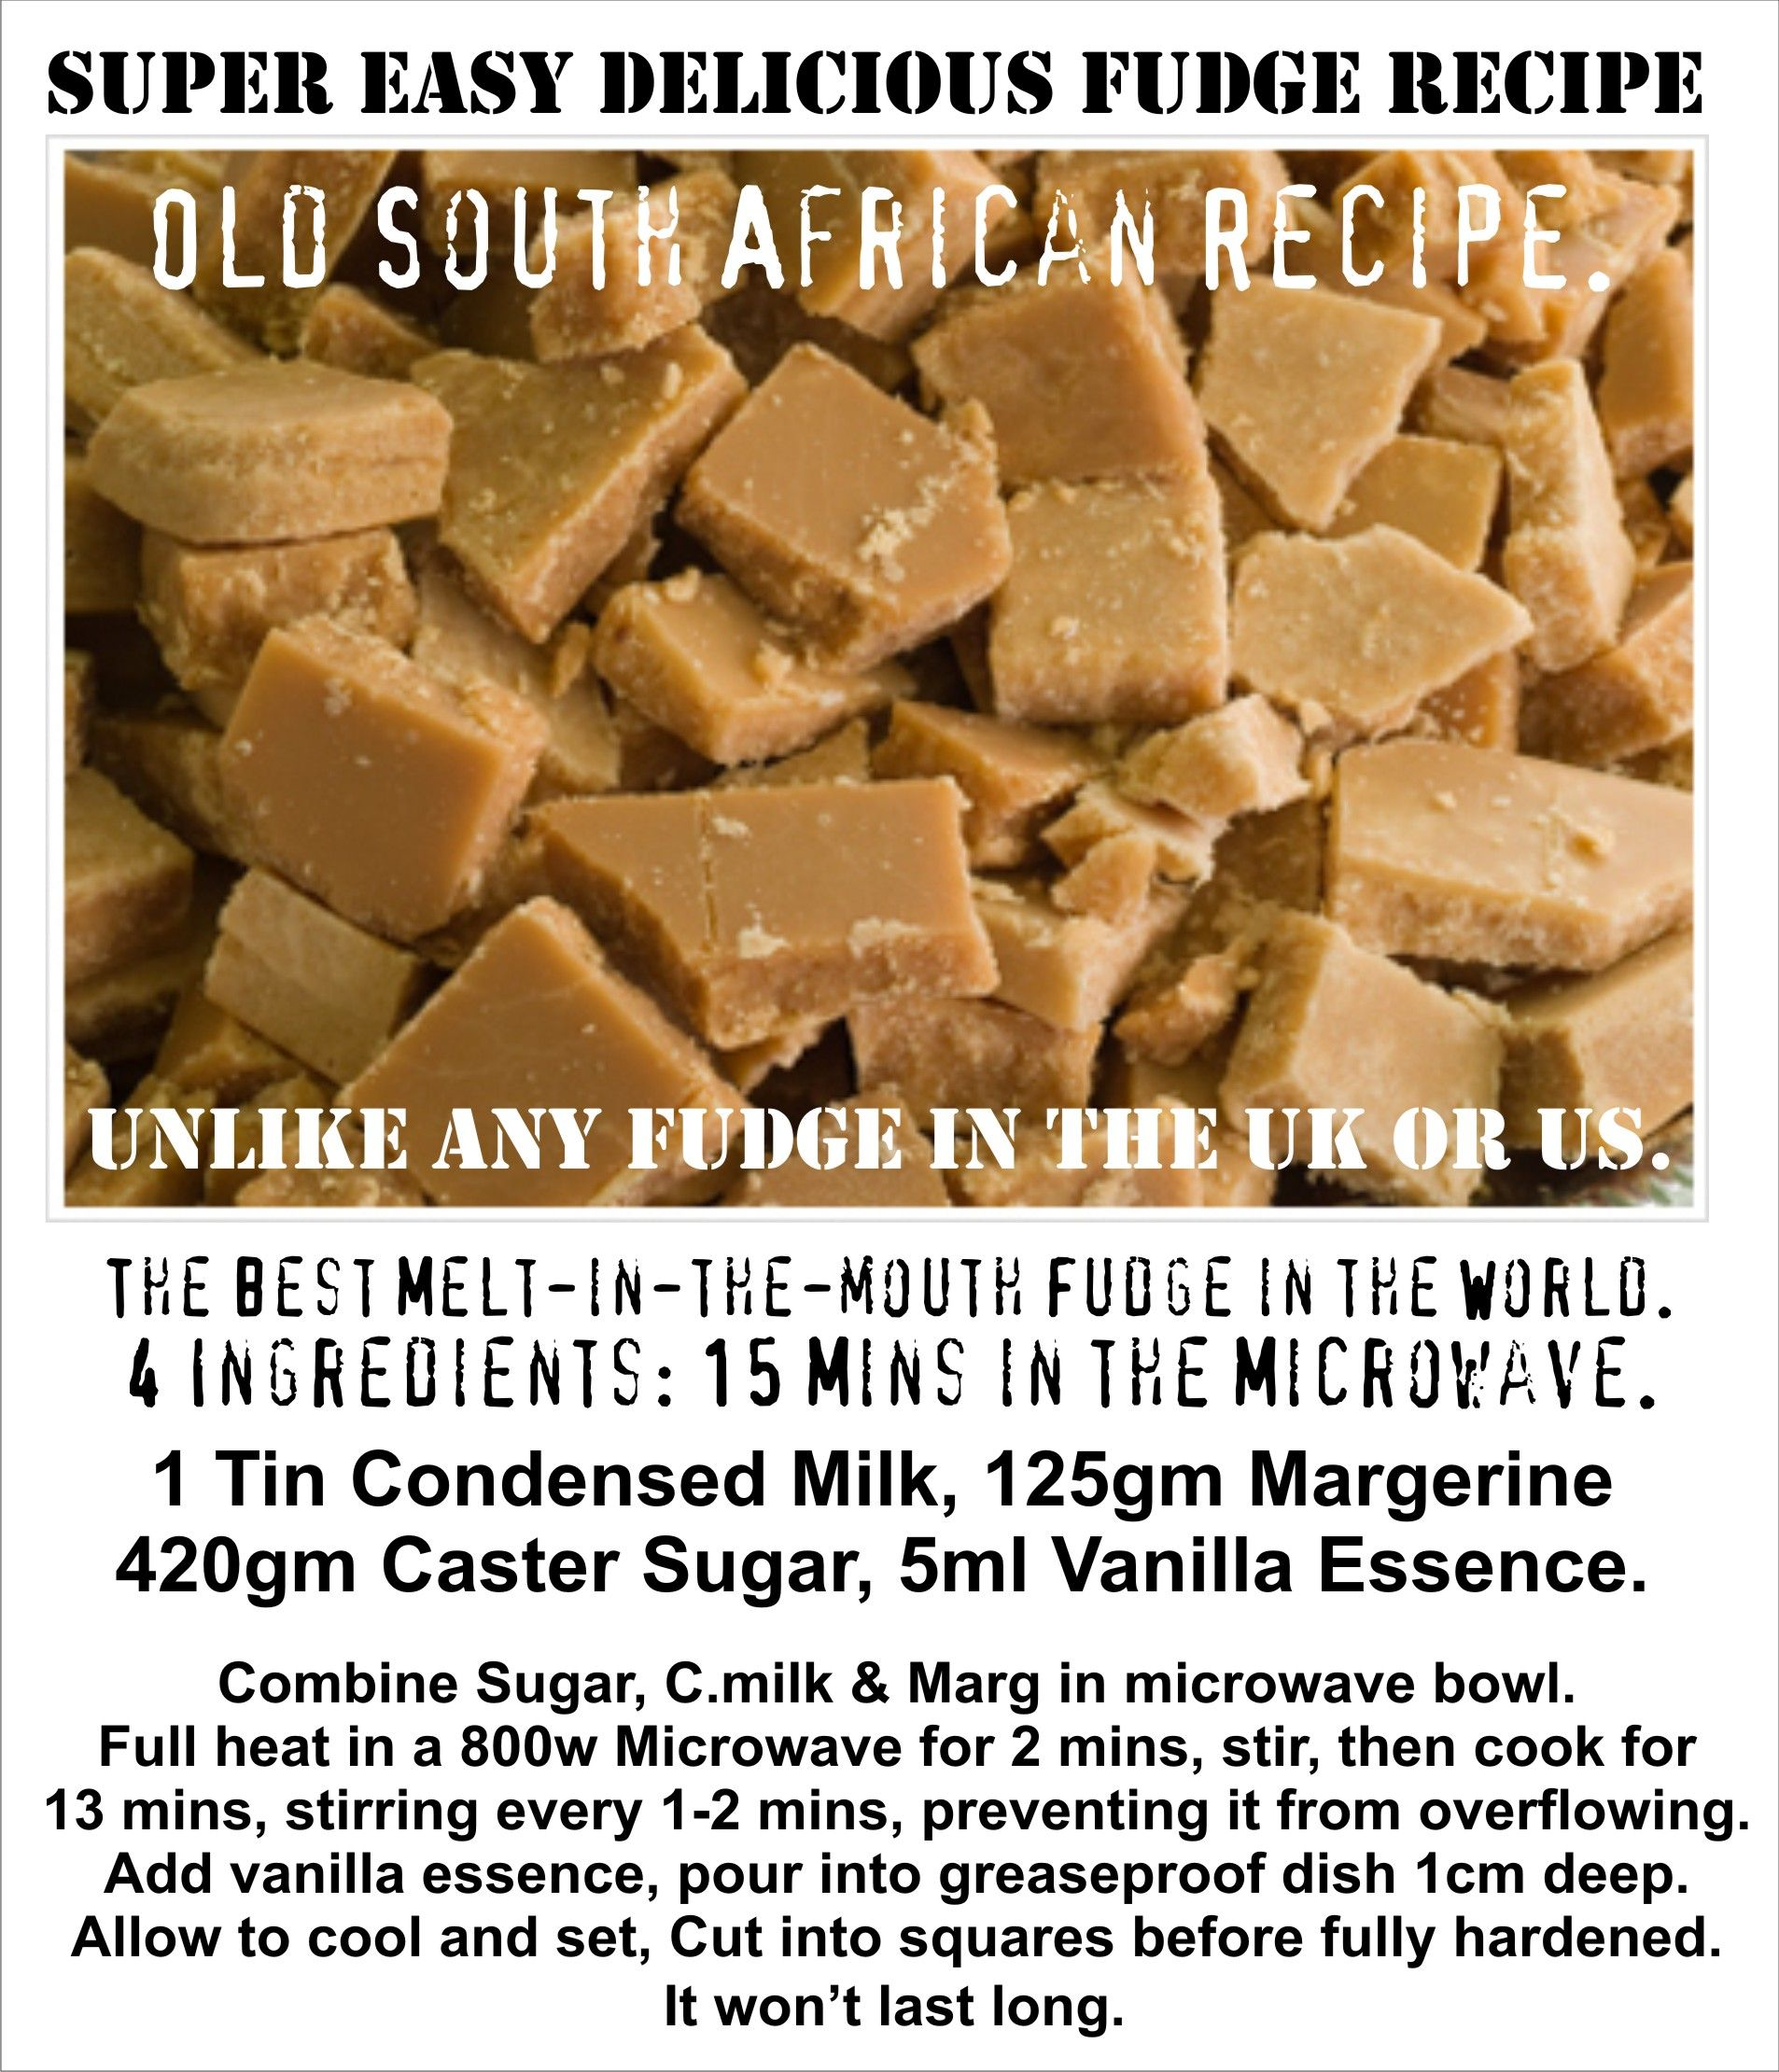 South African Easy Microwave Fudge Recipe Melt In The Mouth Crystalised Fudge Unlike Any You Fudge Recipes South African Fudge Recipe South African Desserts